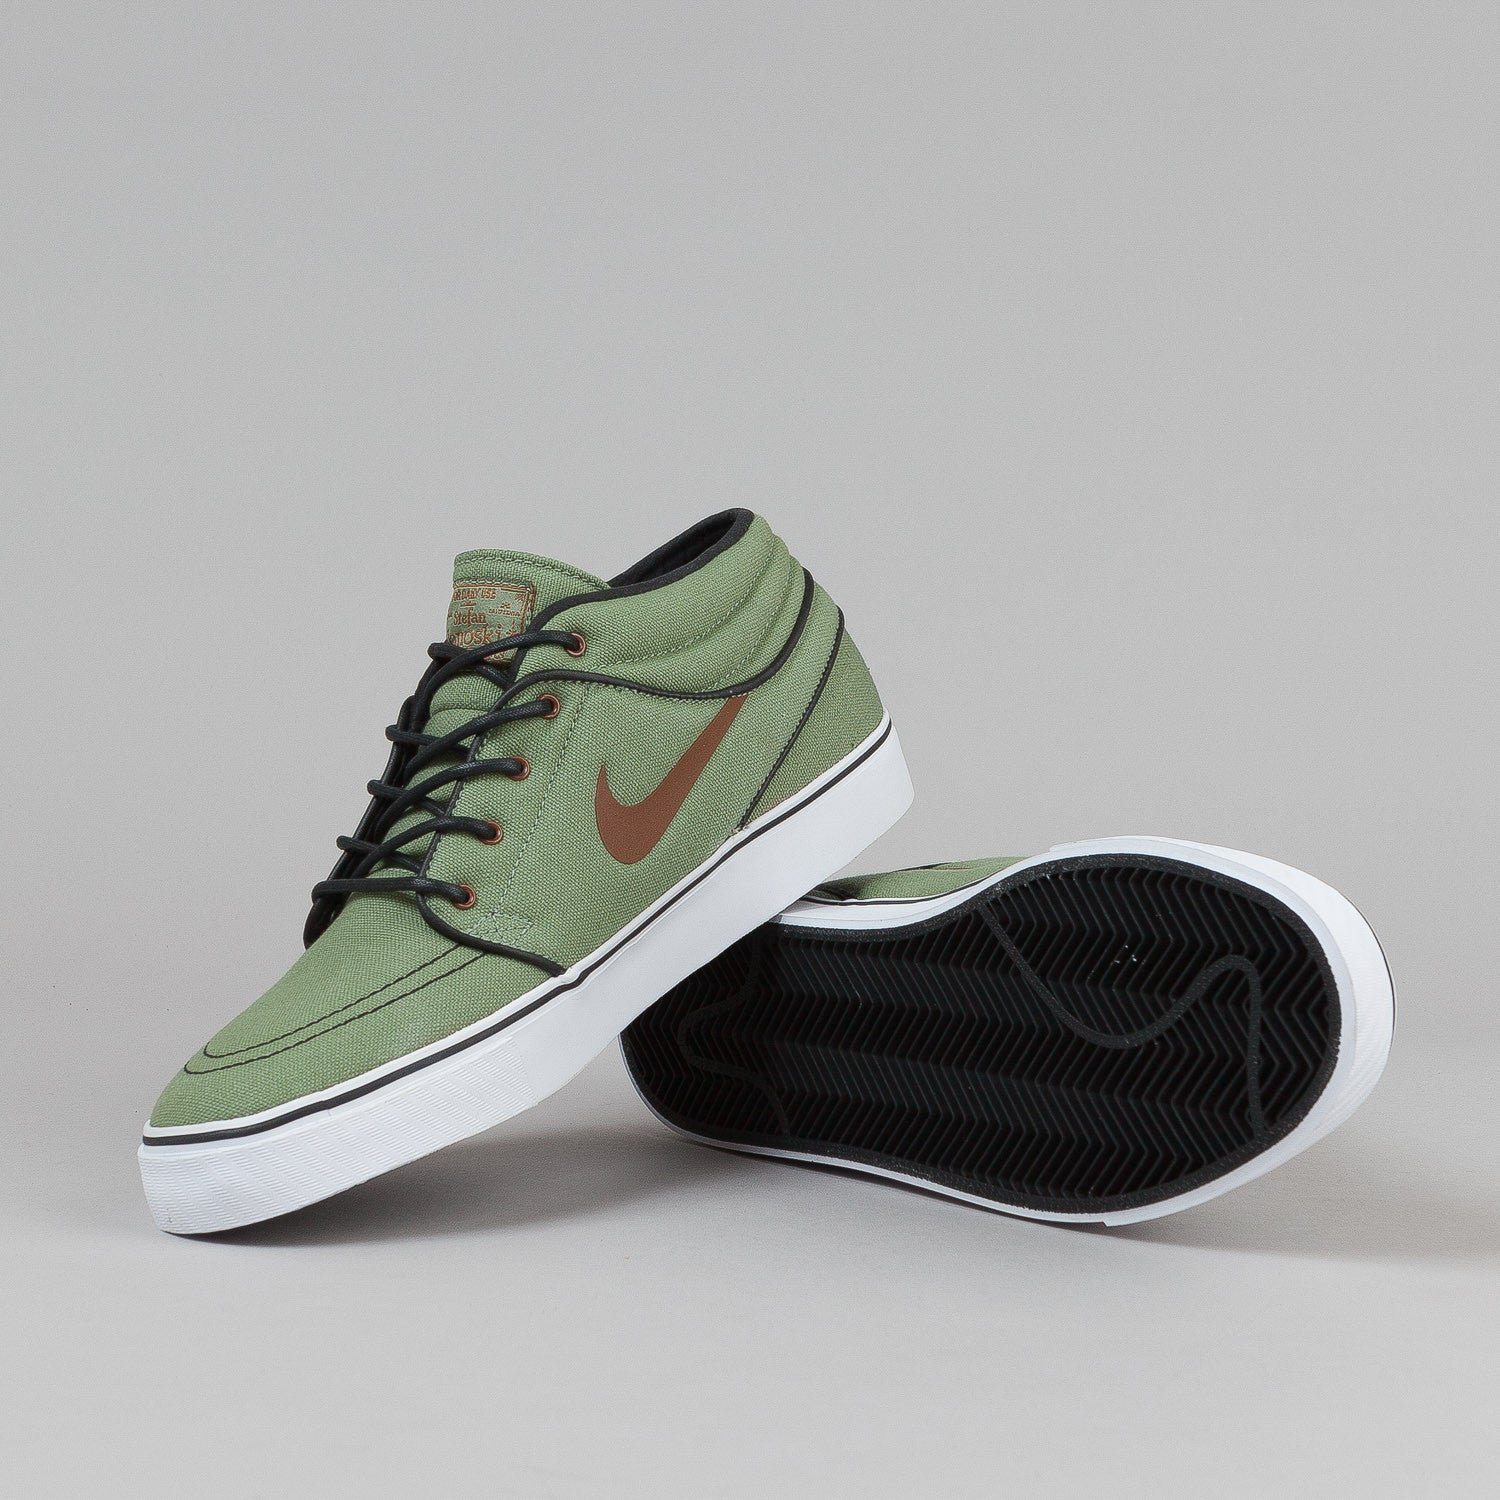 ... Nike SB Stefan Janoski Mid Shoes - Oil Green / Pecan ...